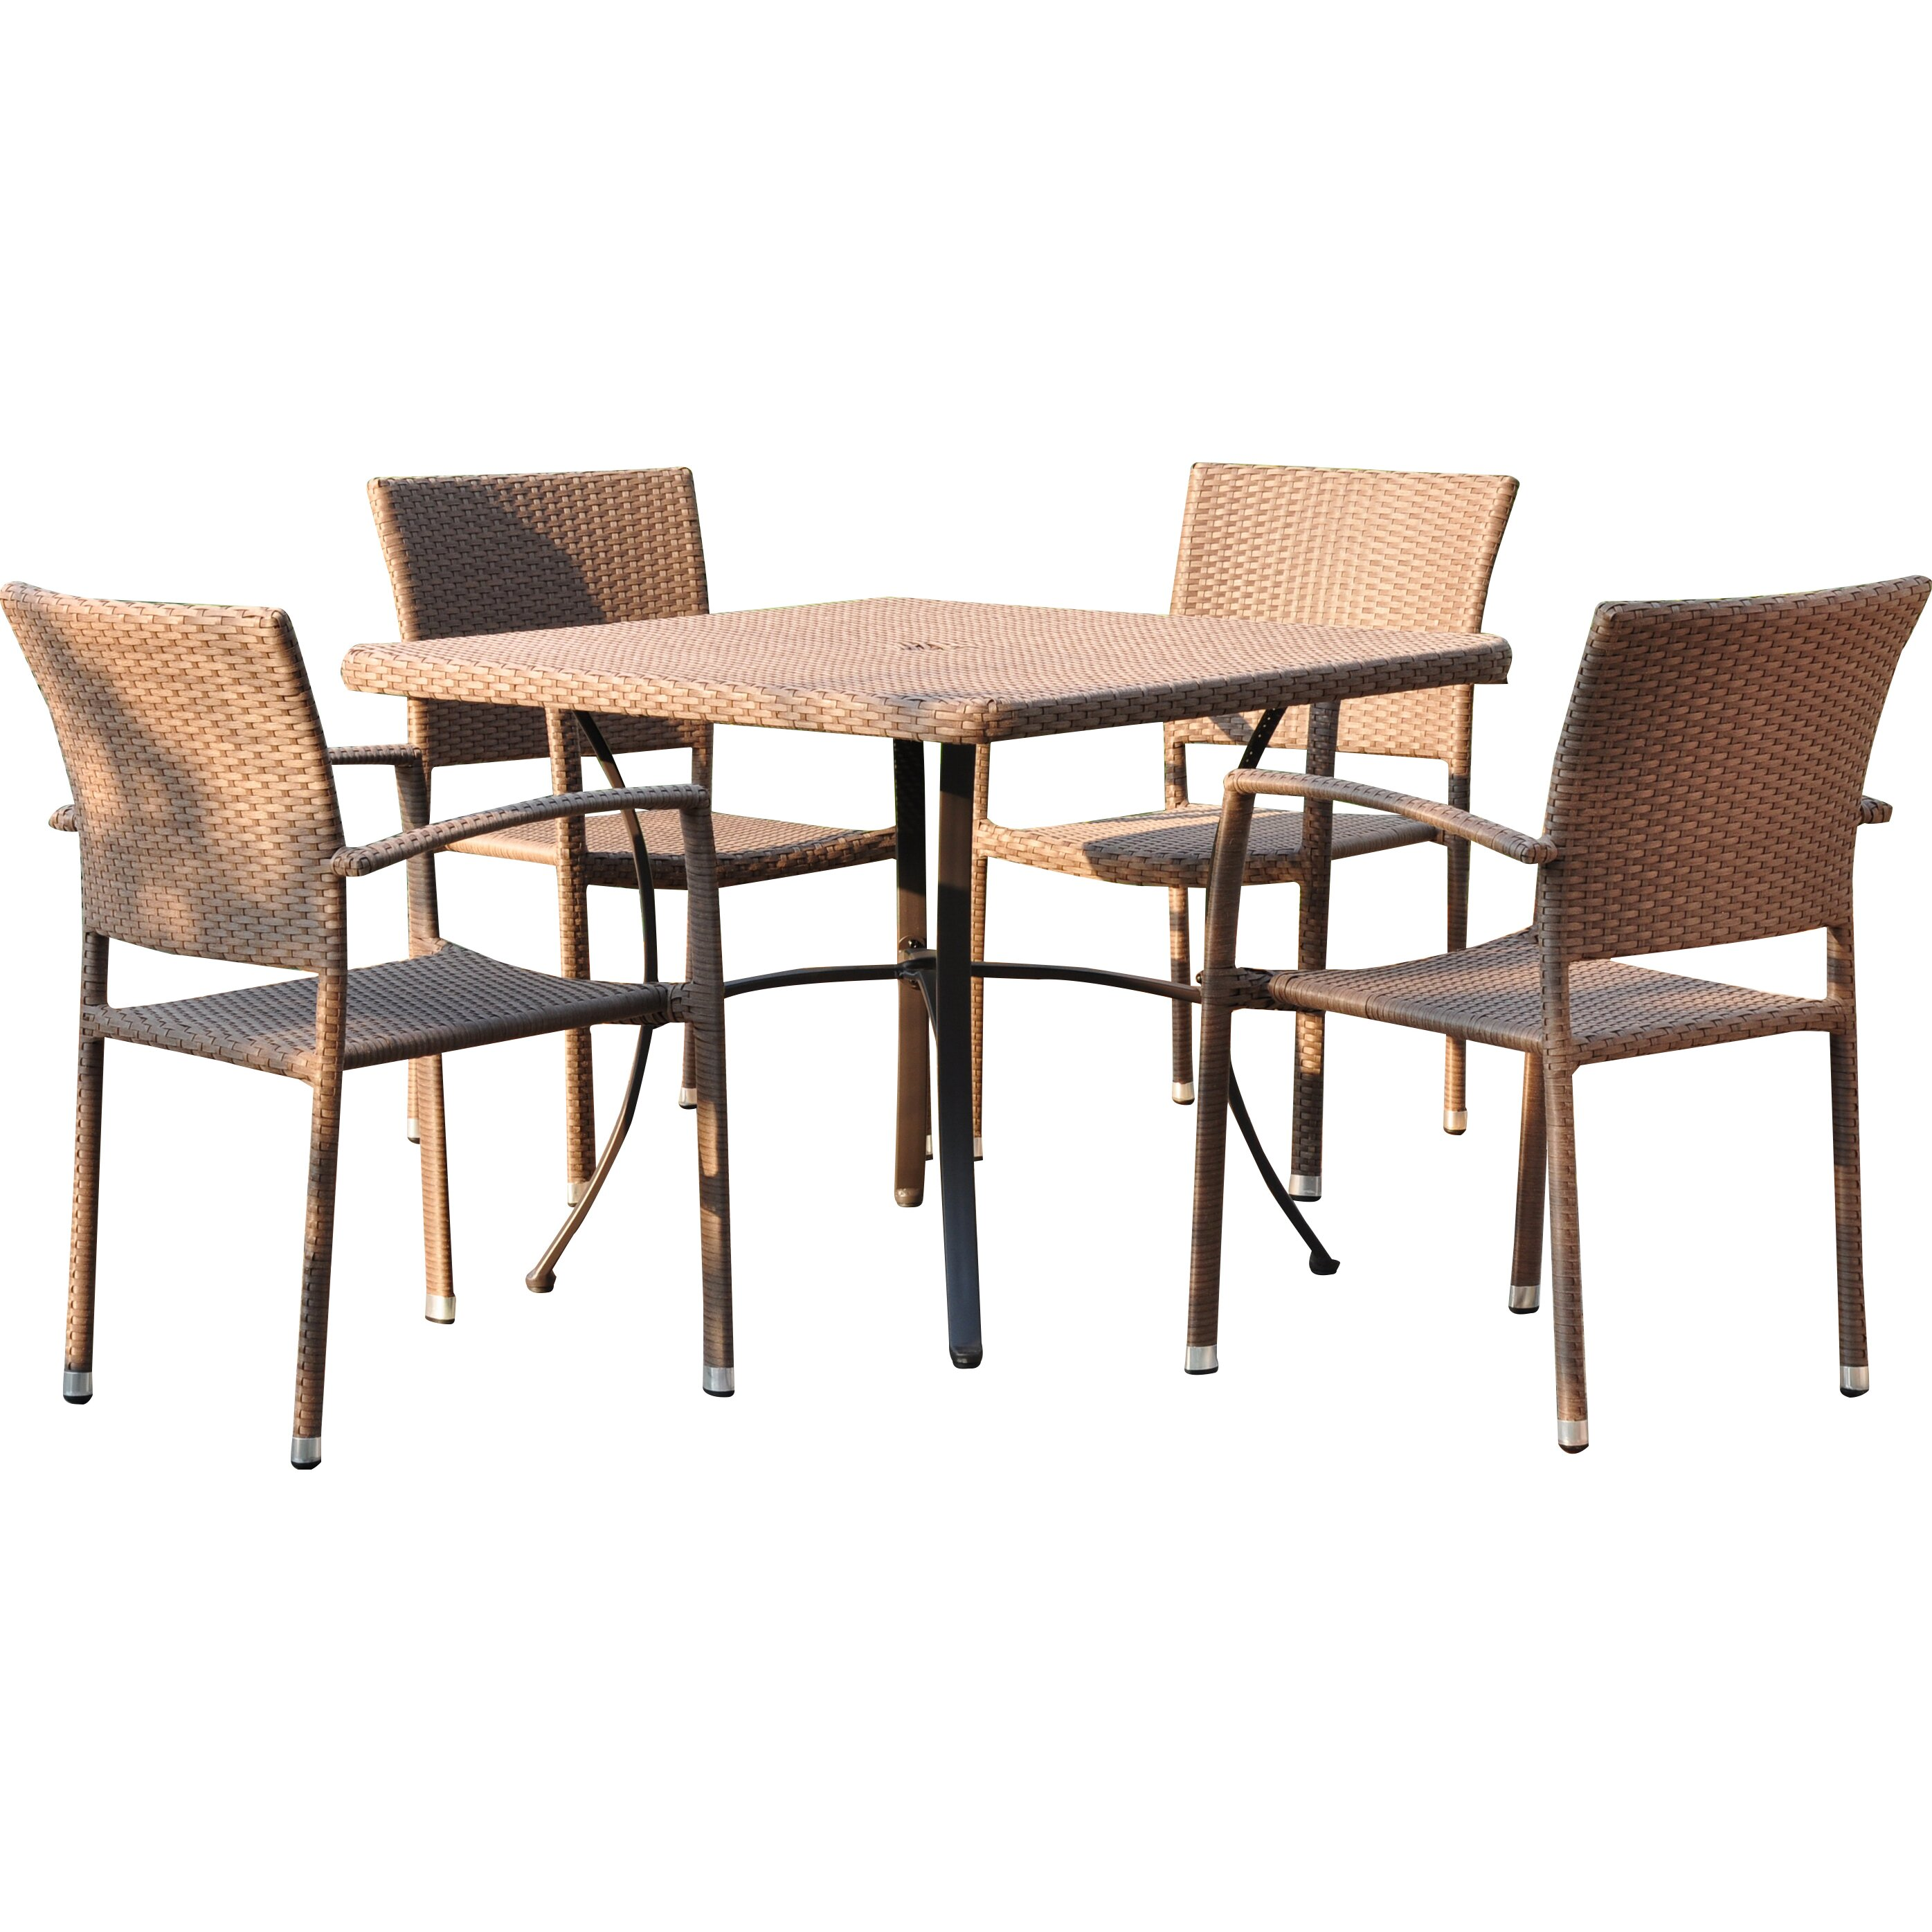 Brayden Studio Katzer 5 Piece Dining Set Wayfair